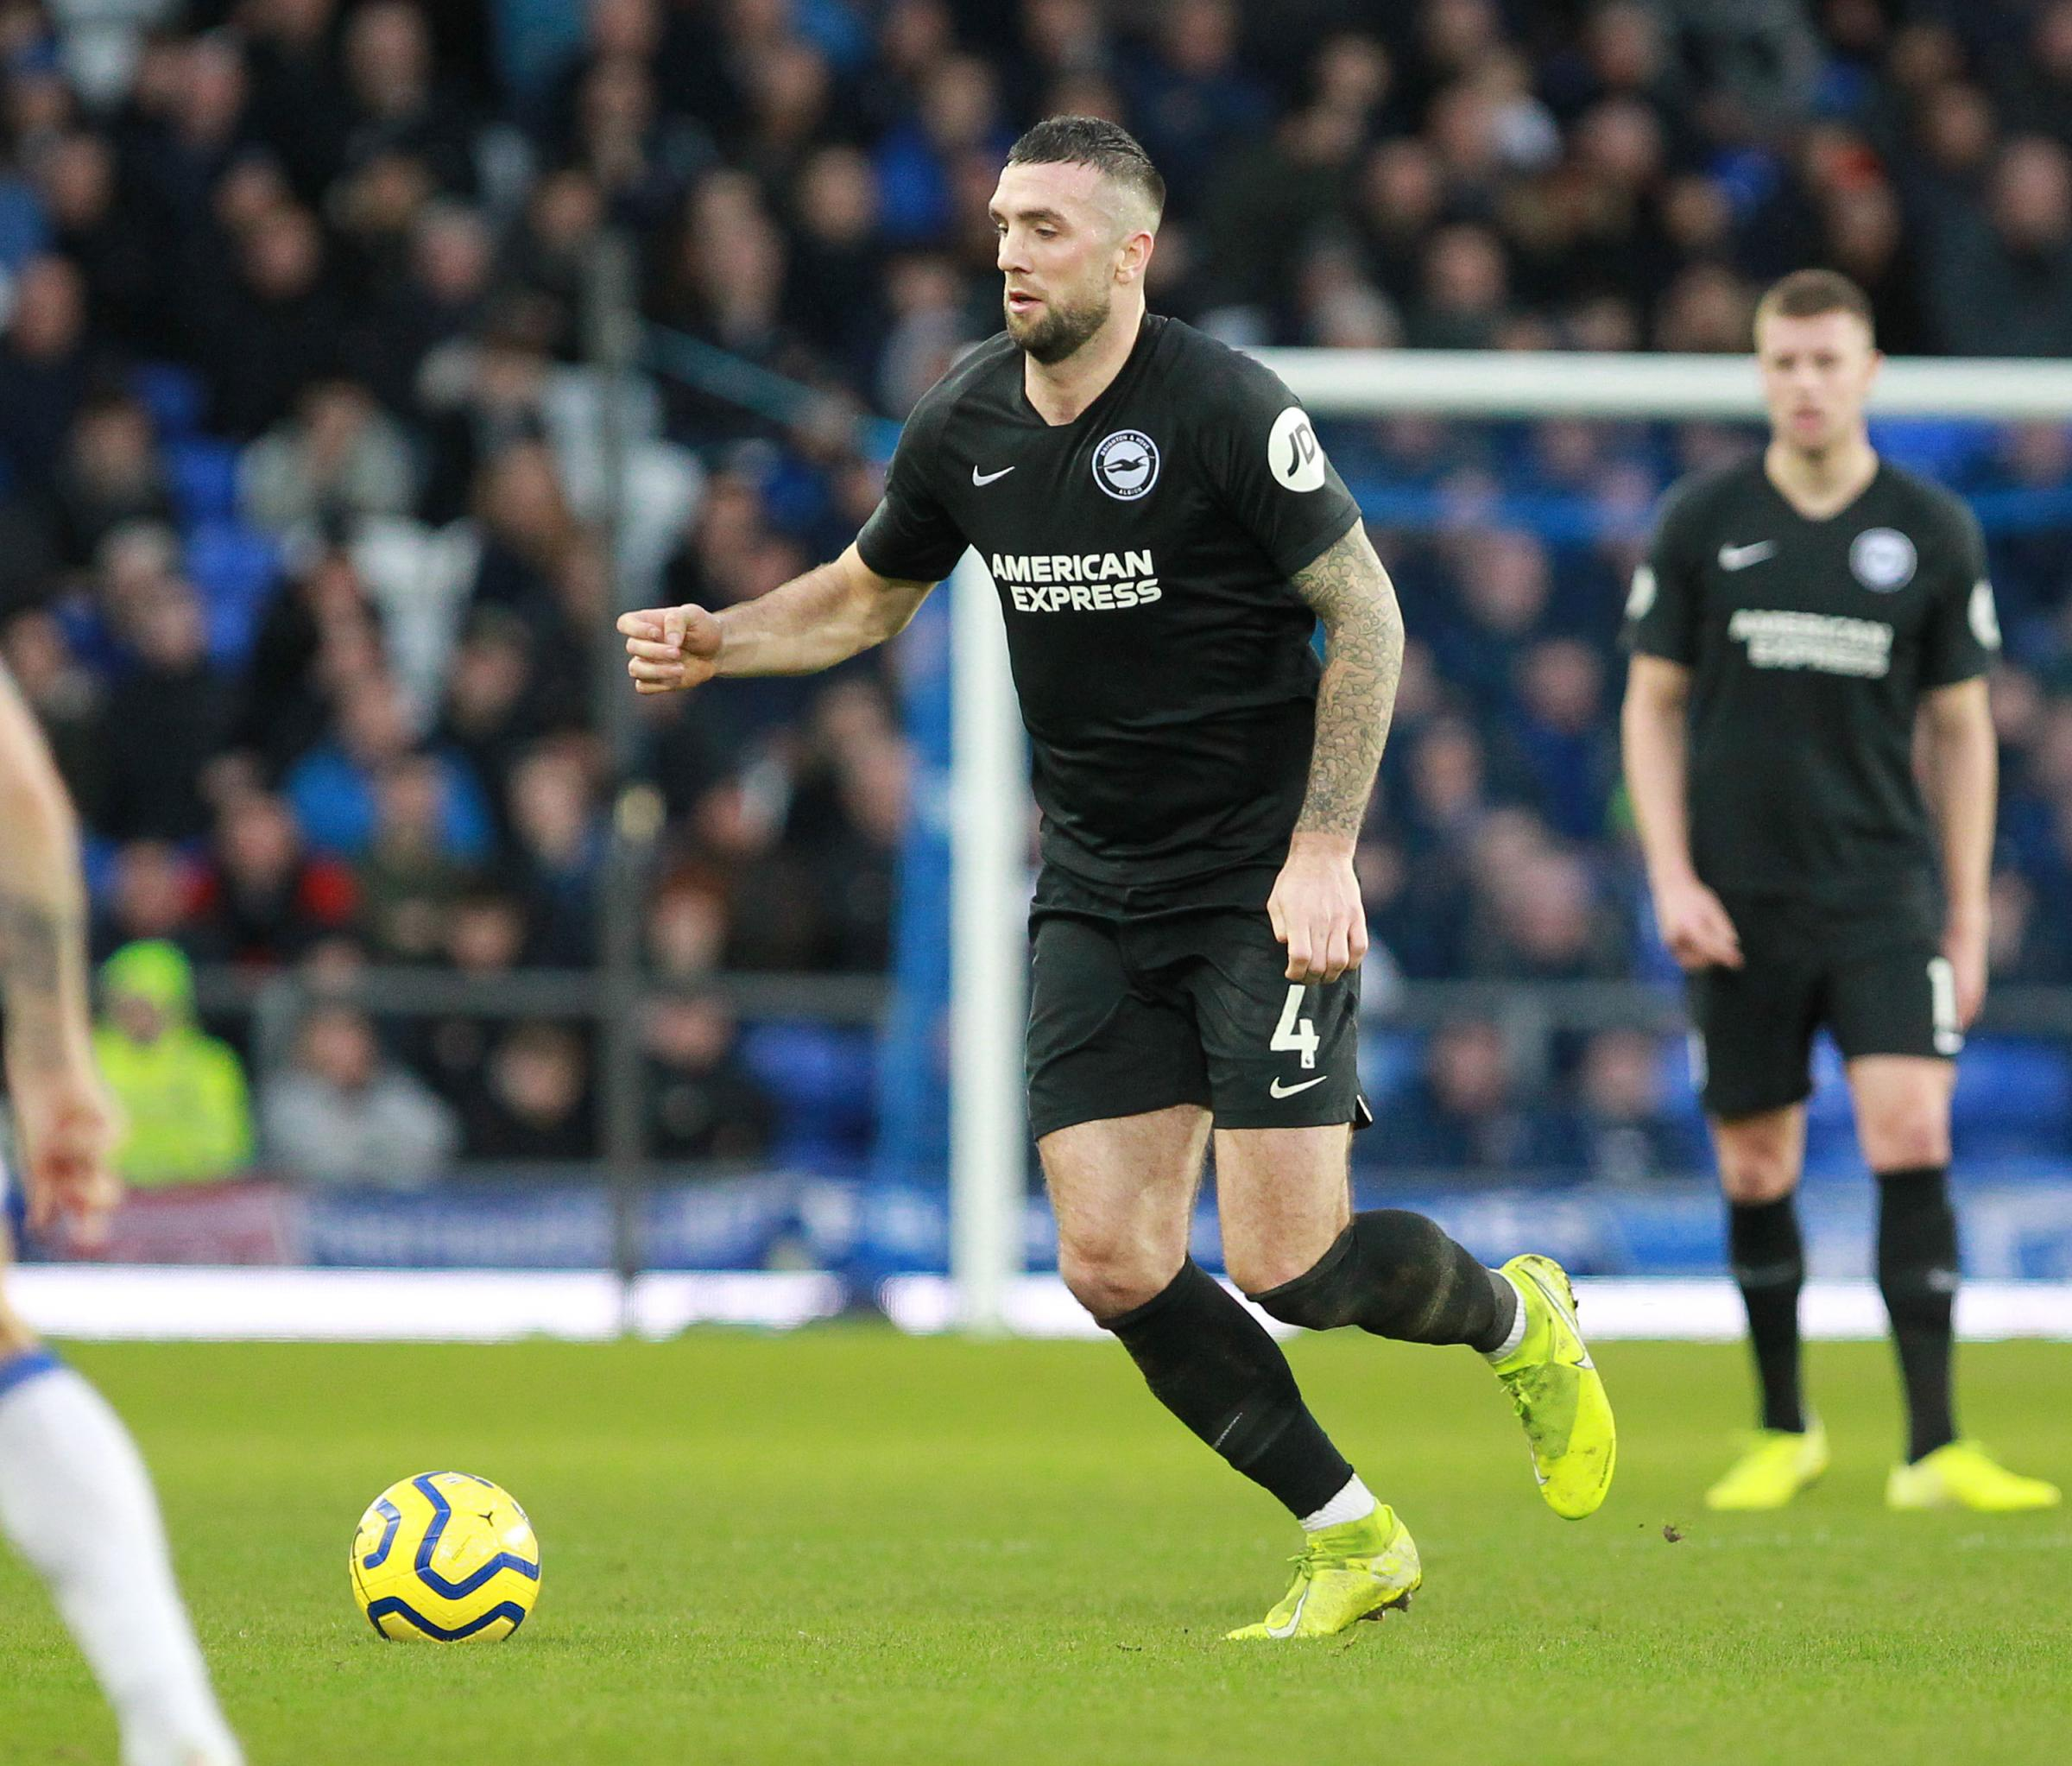 Shane Duffy on groin niggle: 'No excuses - it won't stop me'